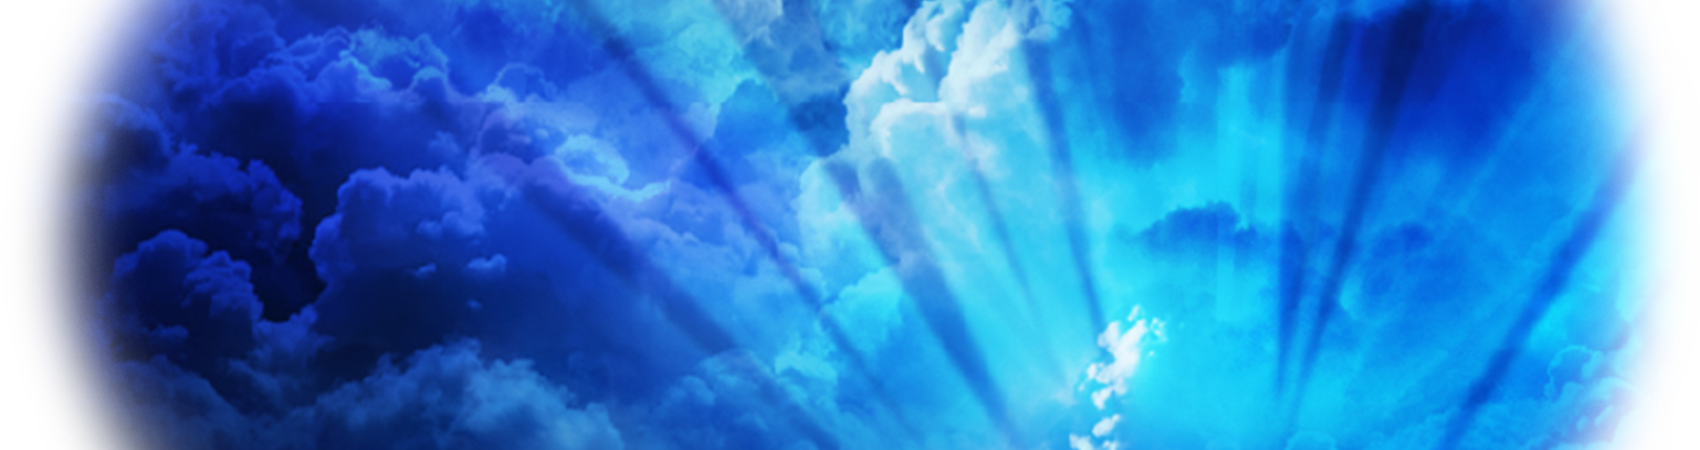 Heaven background png. God of the aruze